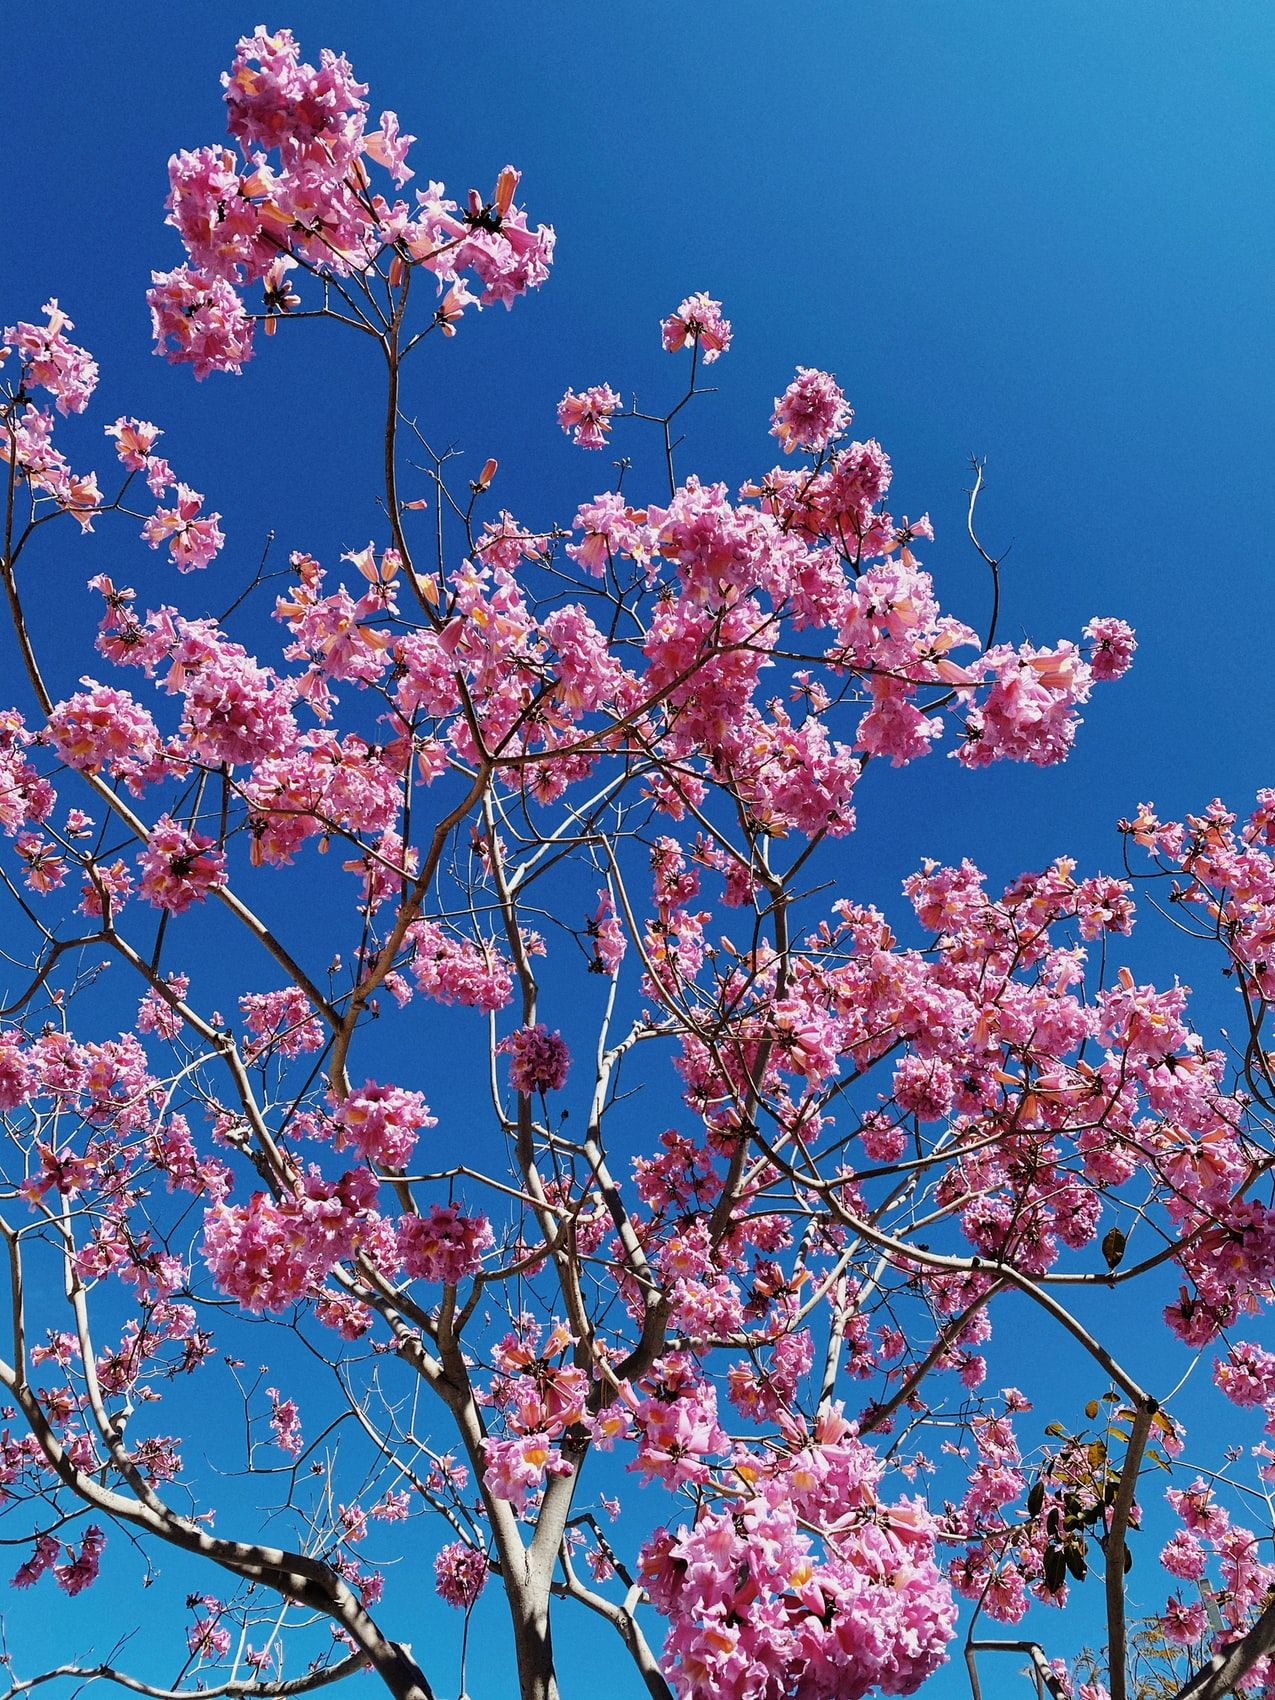 Pink Cherry Blossom Tree Under Blue Sky During Daytime Photo Free Image On Unsplash In 2021 Wallpaper Pink And Blue Blue Flower Wallpaper Pink Blossom Tree